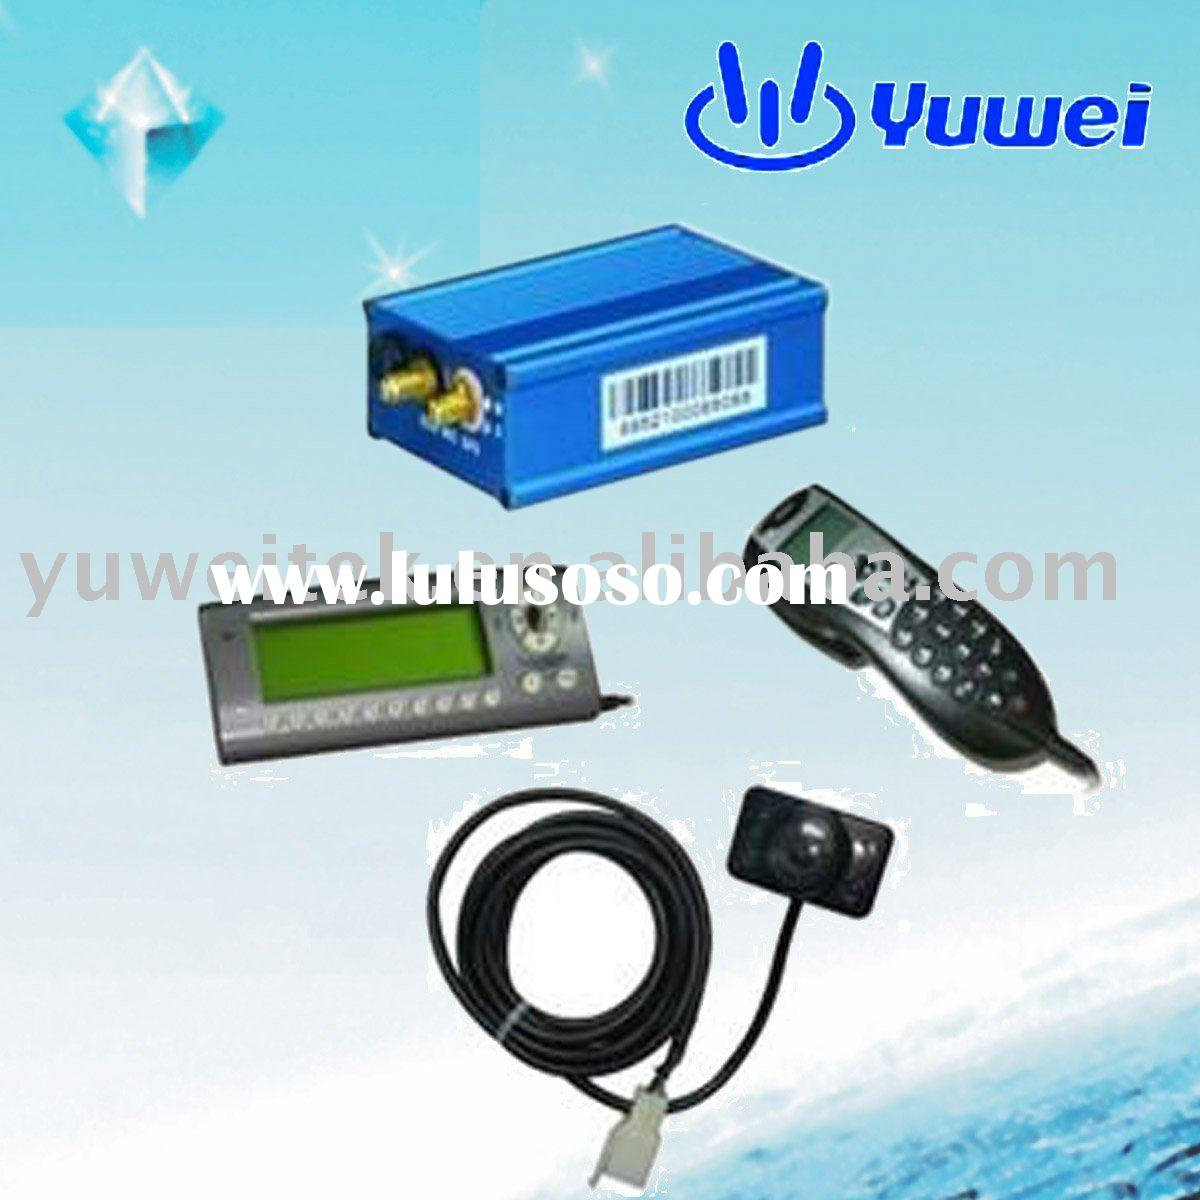 GPS/GSM/GPRS/SMS car gps tracker system remote Immobilization control